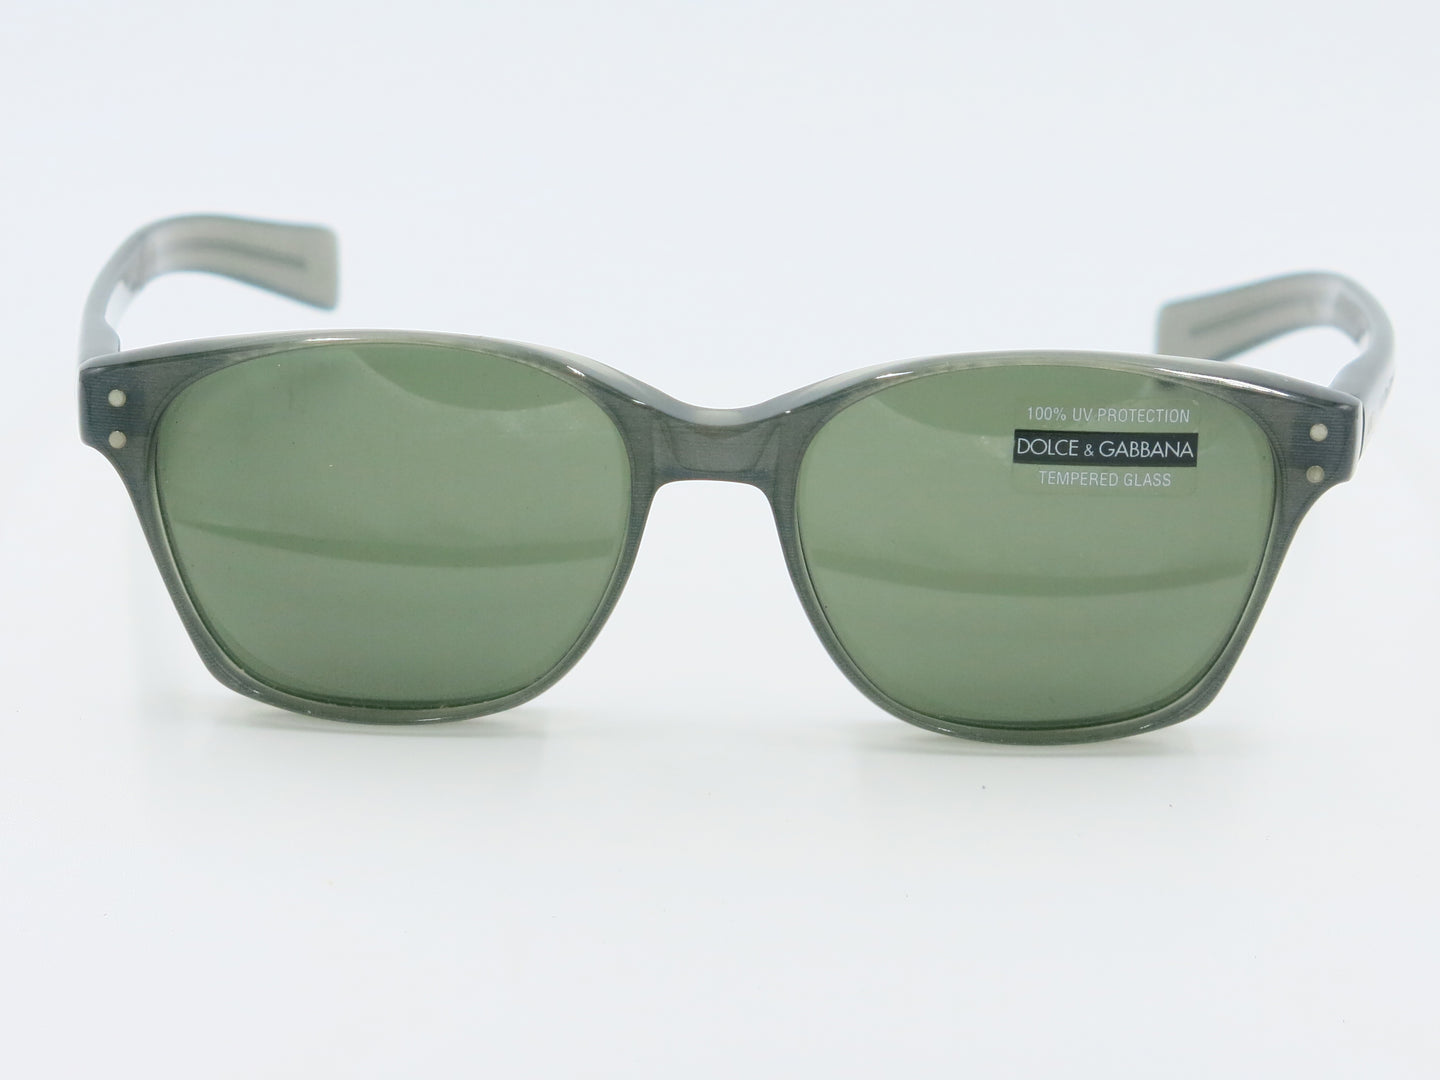 Dolce & Gabbana Sunglasses DG 7192 G | Sunglasses by Dolce & Gabbana | Friedman & Sons